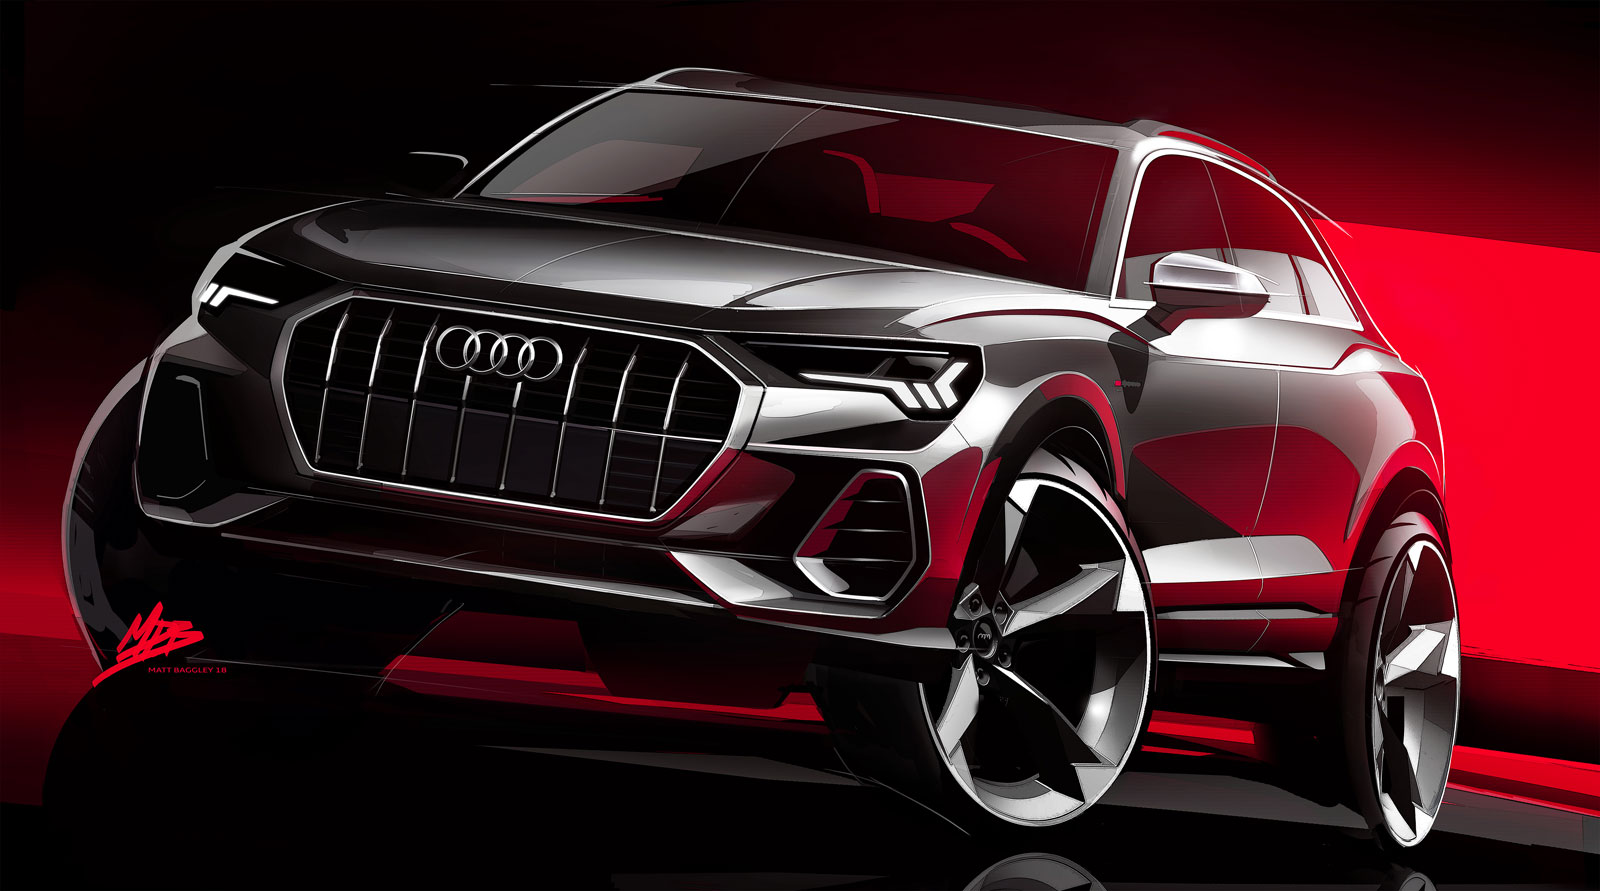 Audi Q3 Design Sketch Render Car Body Design